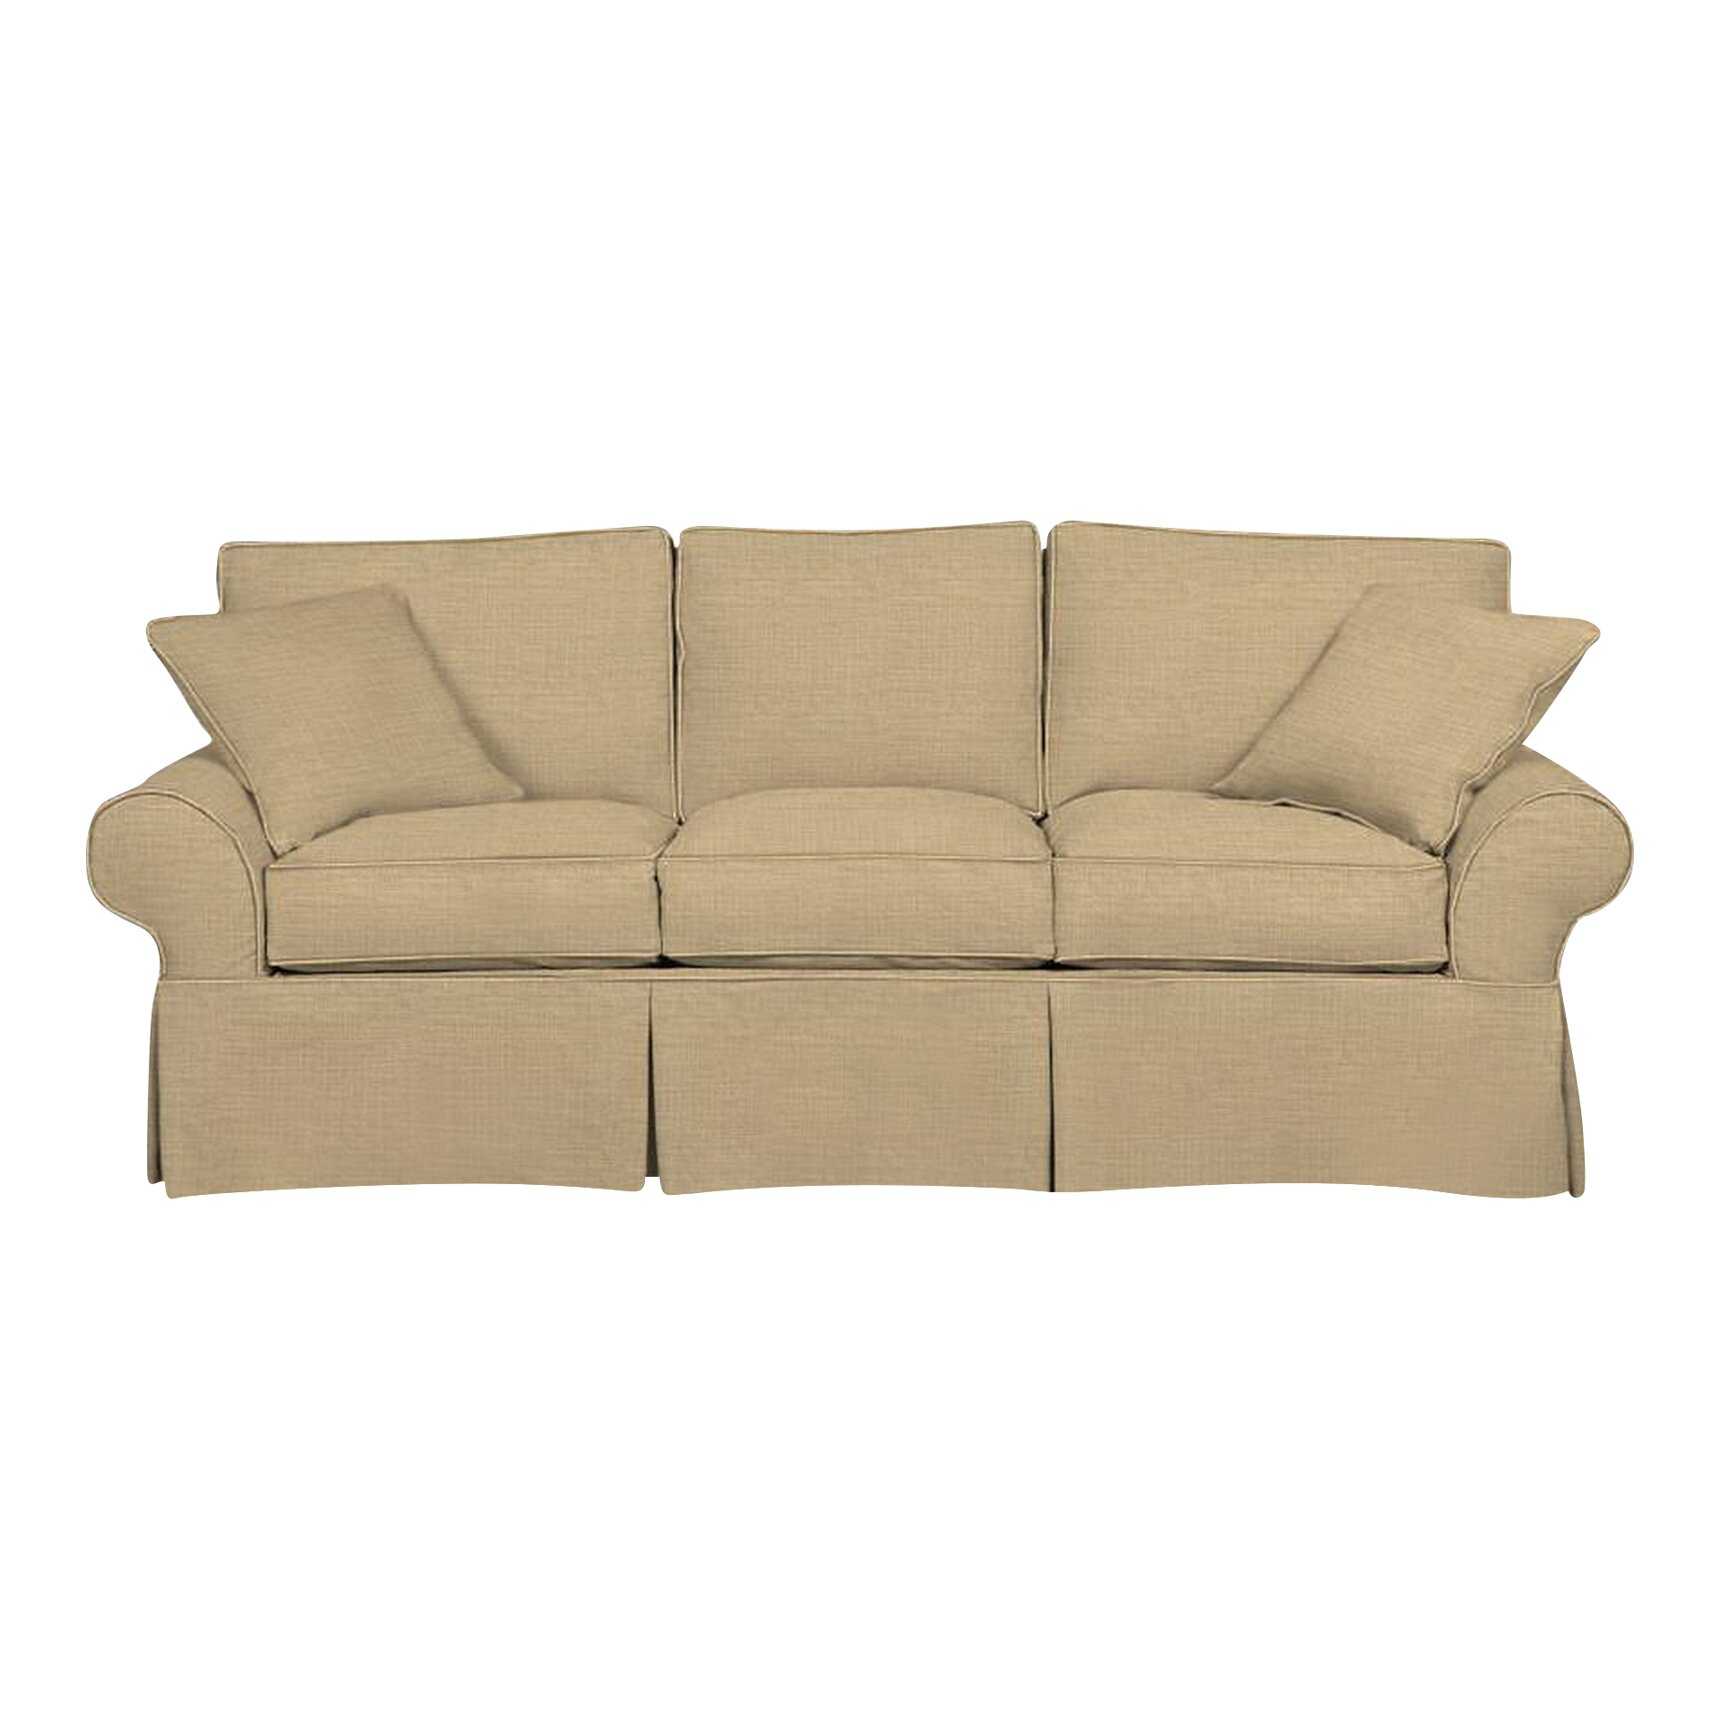 Wayfair Com Sales: Wayfair Custom Upholstery Casey Sofa & Reviews